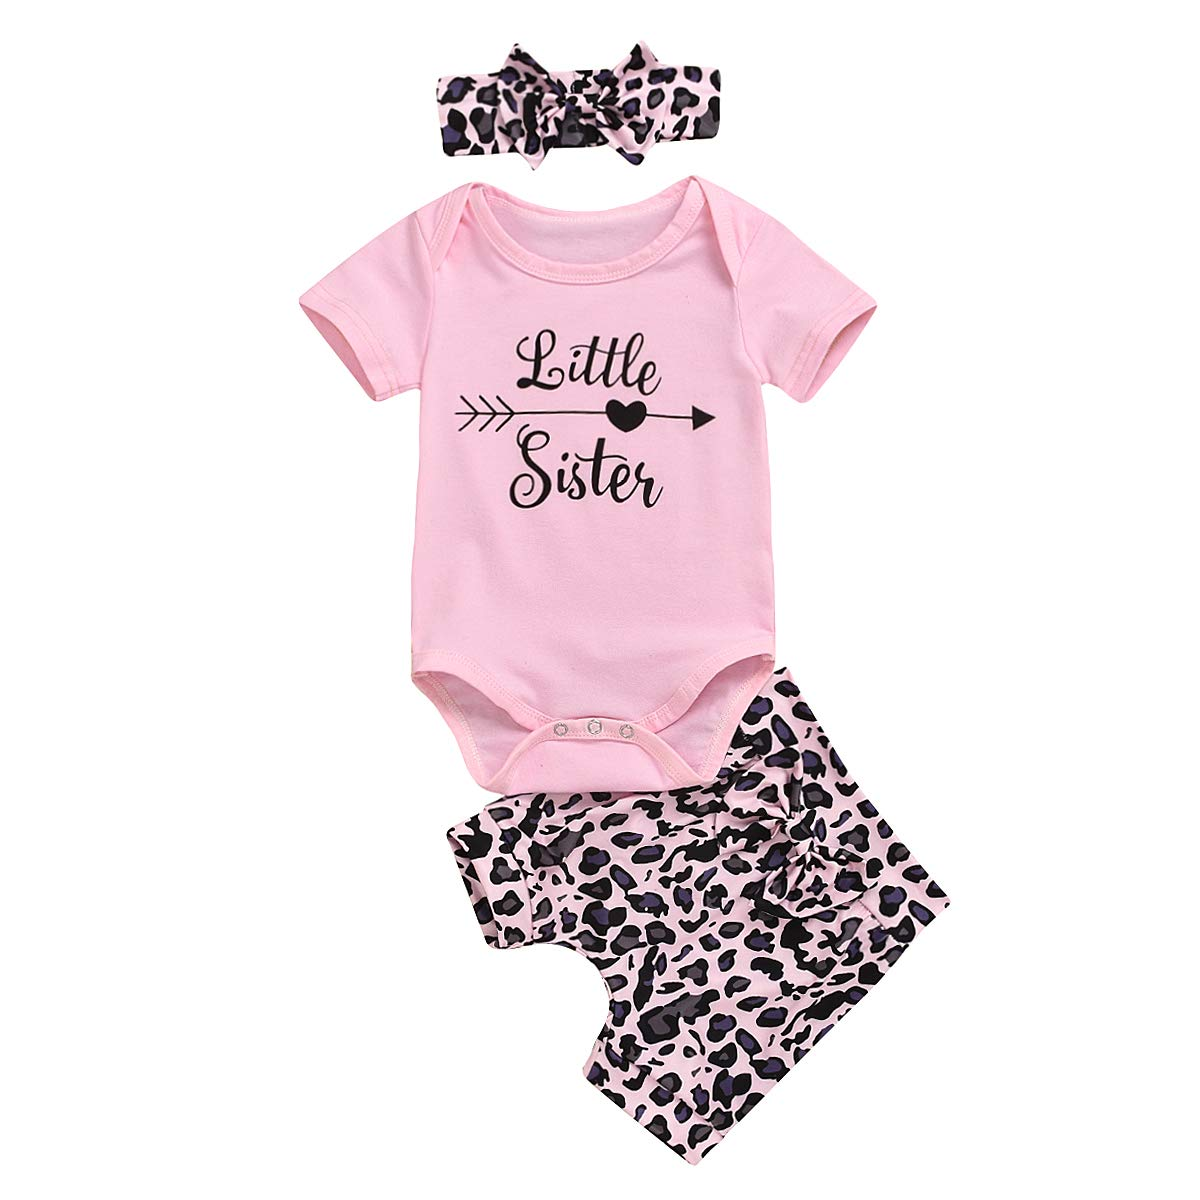 Newborn Baby Girls Little Sister Big Sister Matching Outfits Short Sleeve Romper Shirt Top+Leopard Shorts